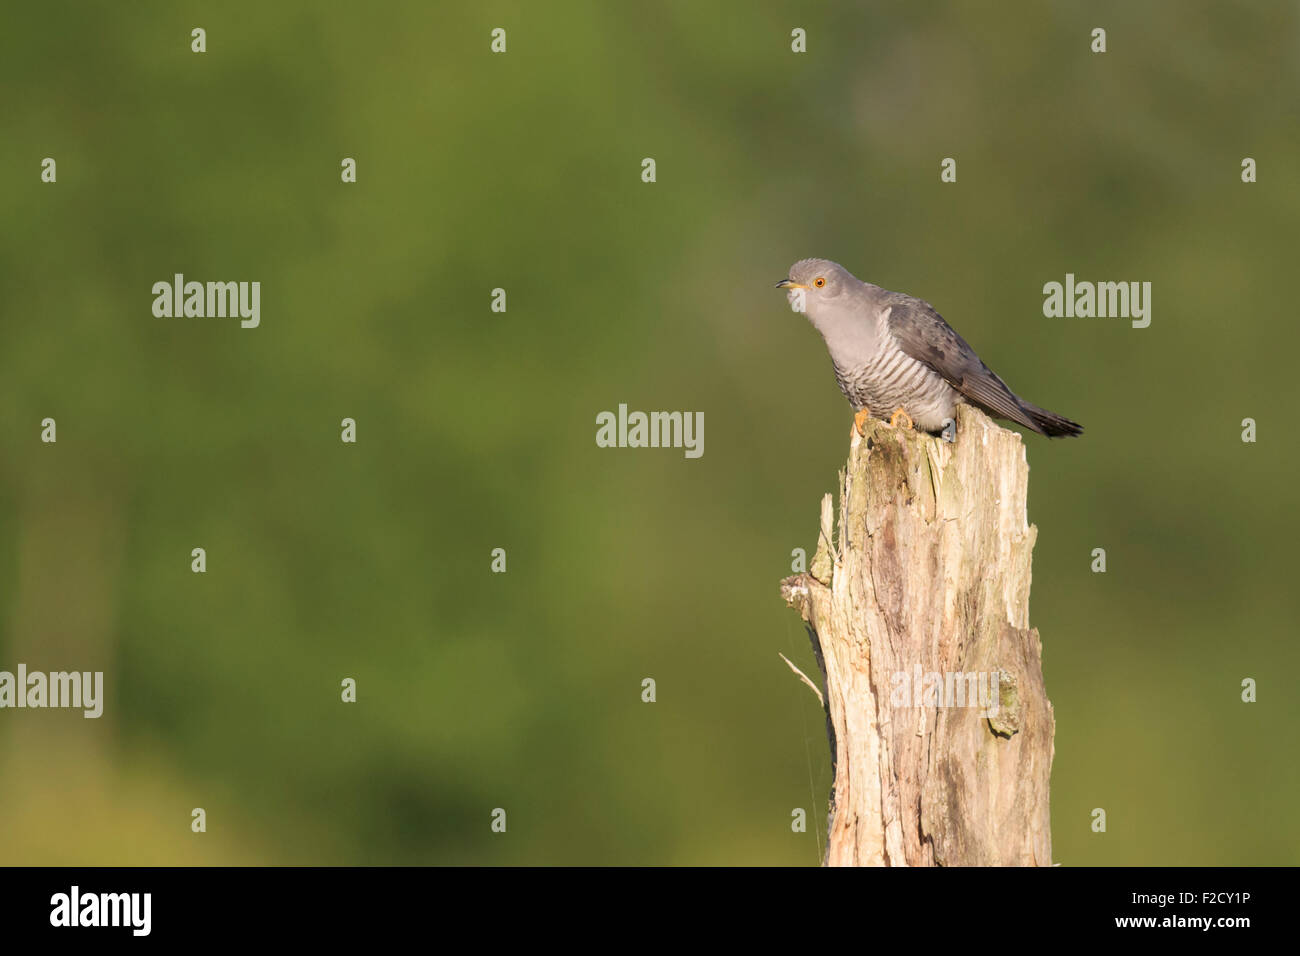 Cuckoo (Cuculus canorus) perched on tree stump calling - Stock Image